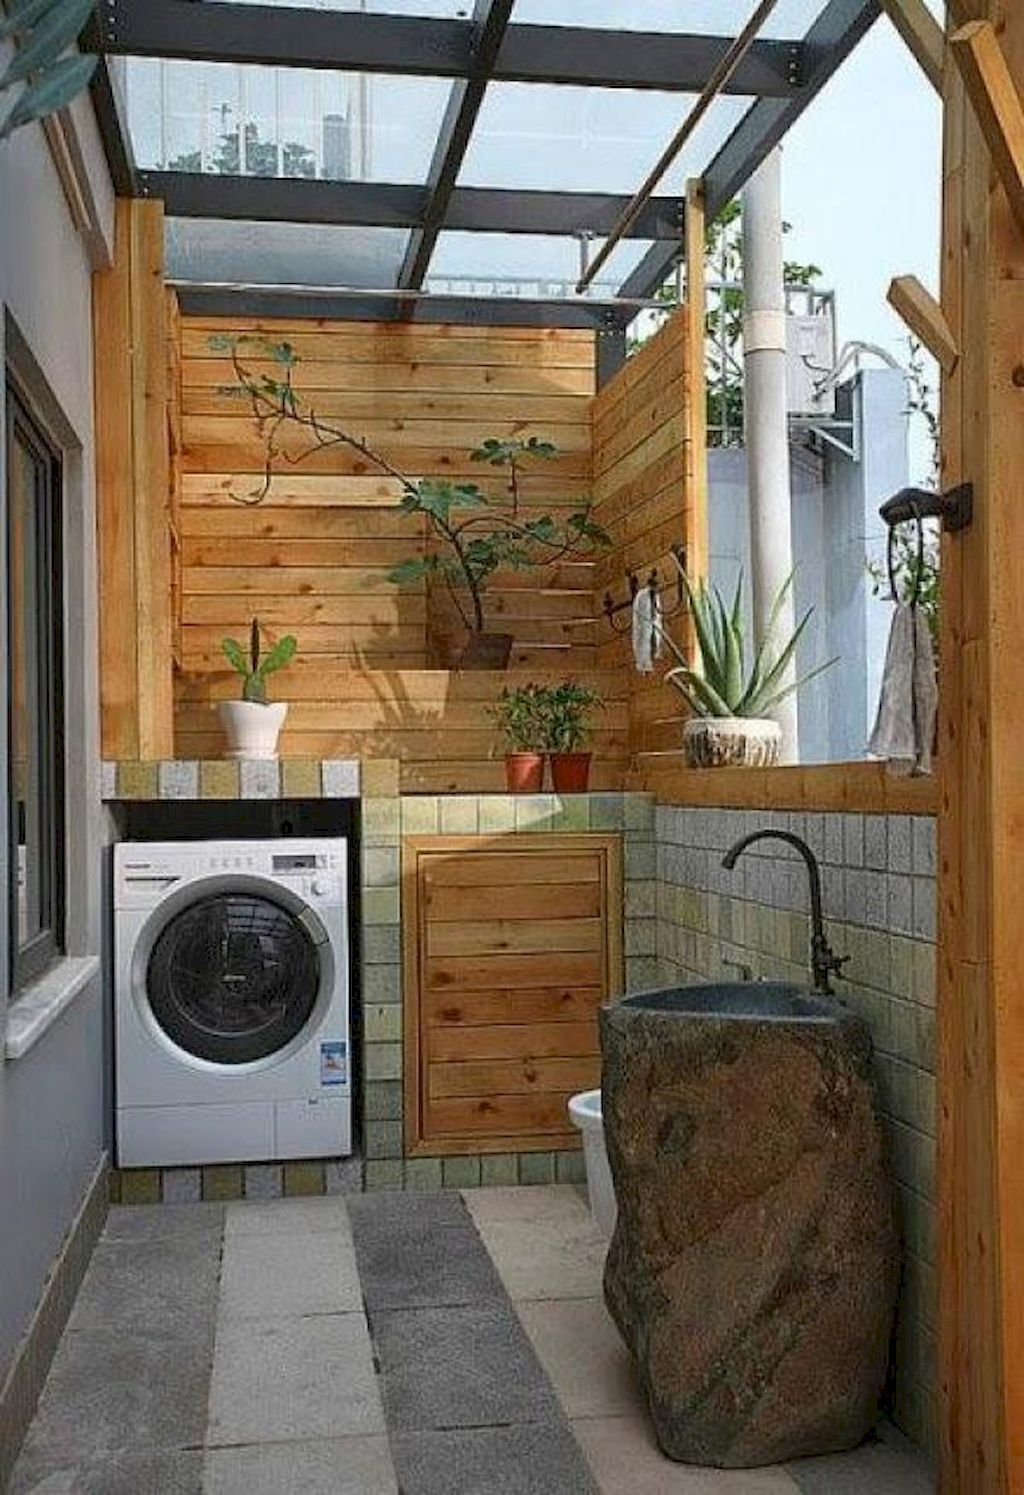 Small Apartment Balcony Garden Ideas: 35 Diy Small Apartment Balcony Garden Ideas (14 En 2019